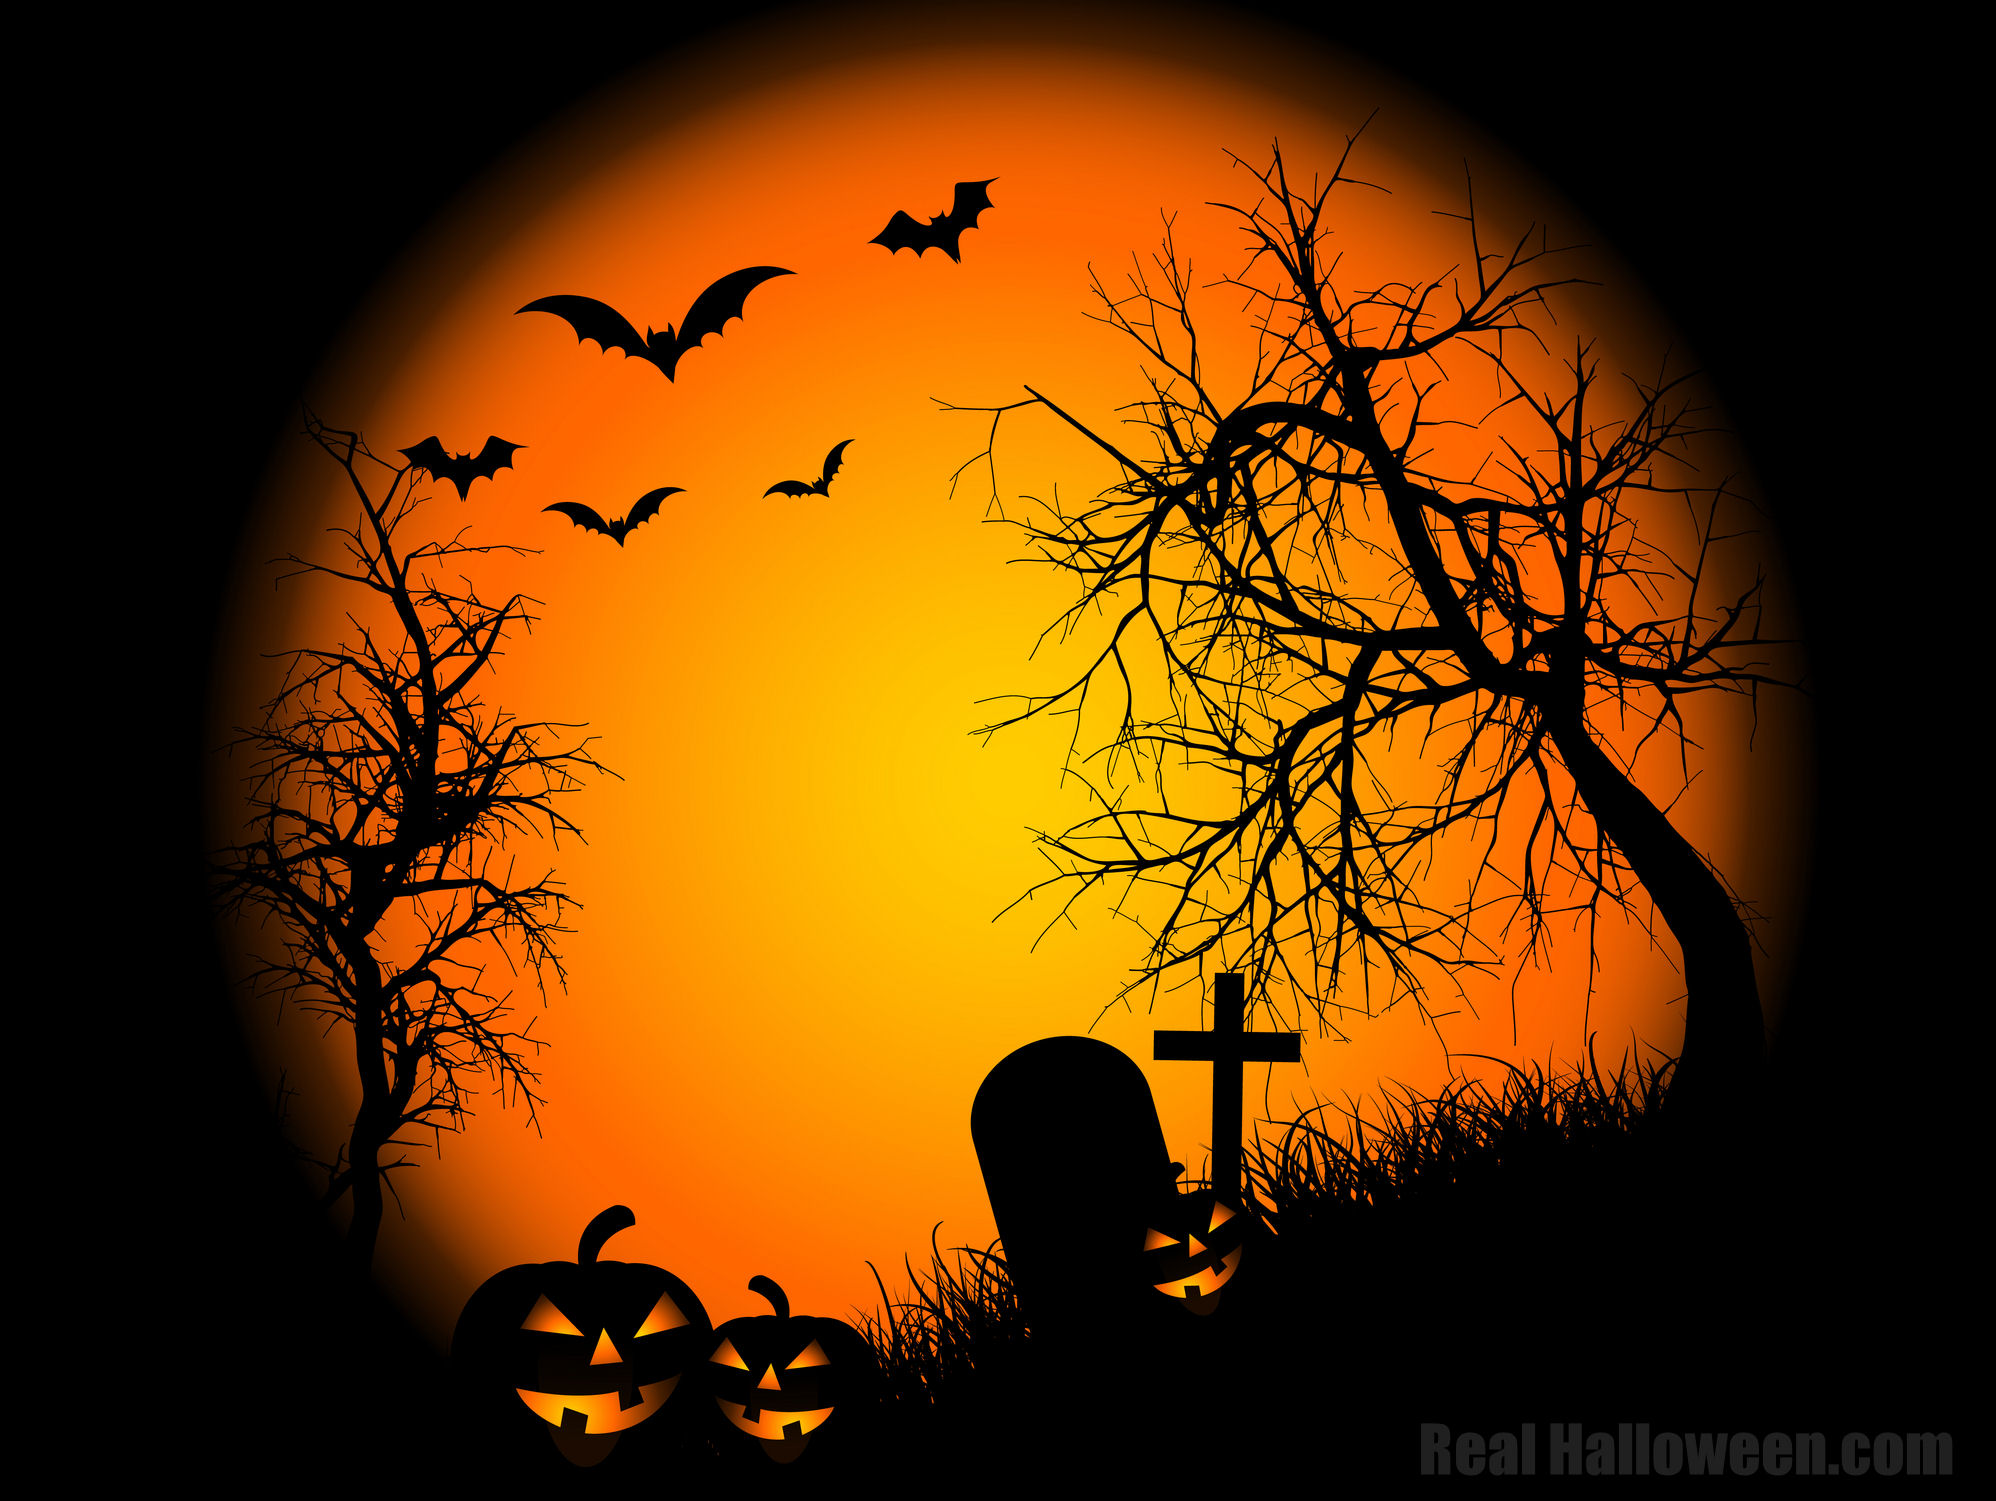 Cool Wallpaper Halloween Screensaver - PODUsx  Trends_351354.jpg